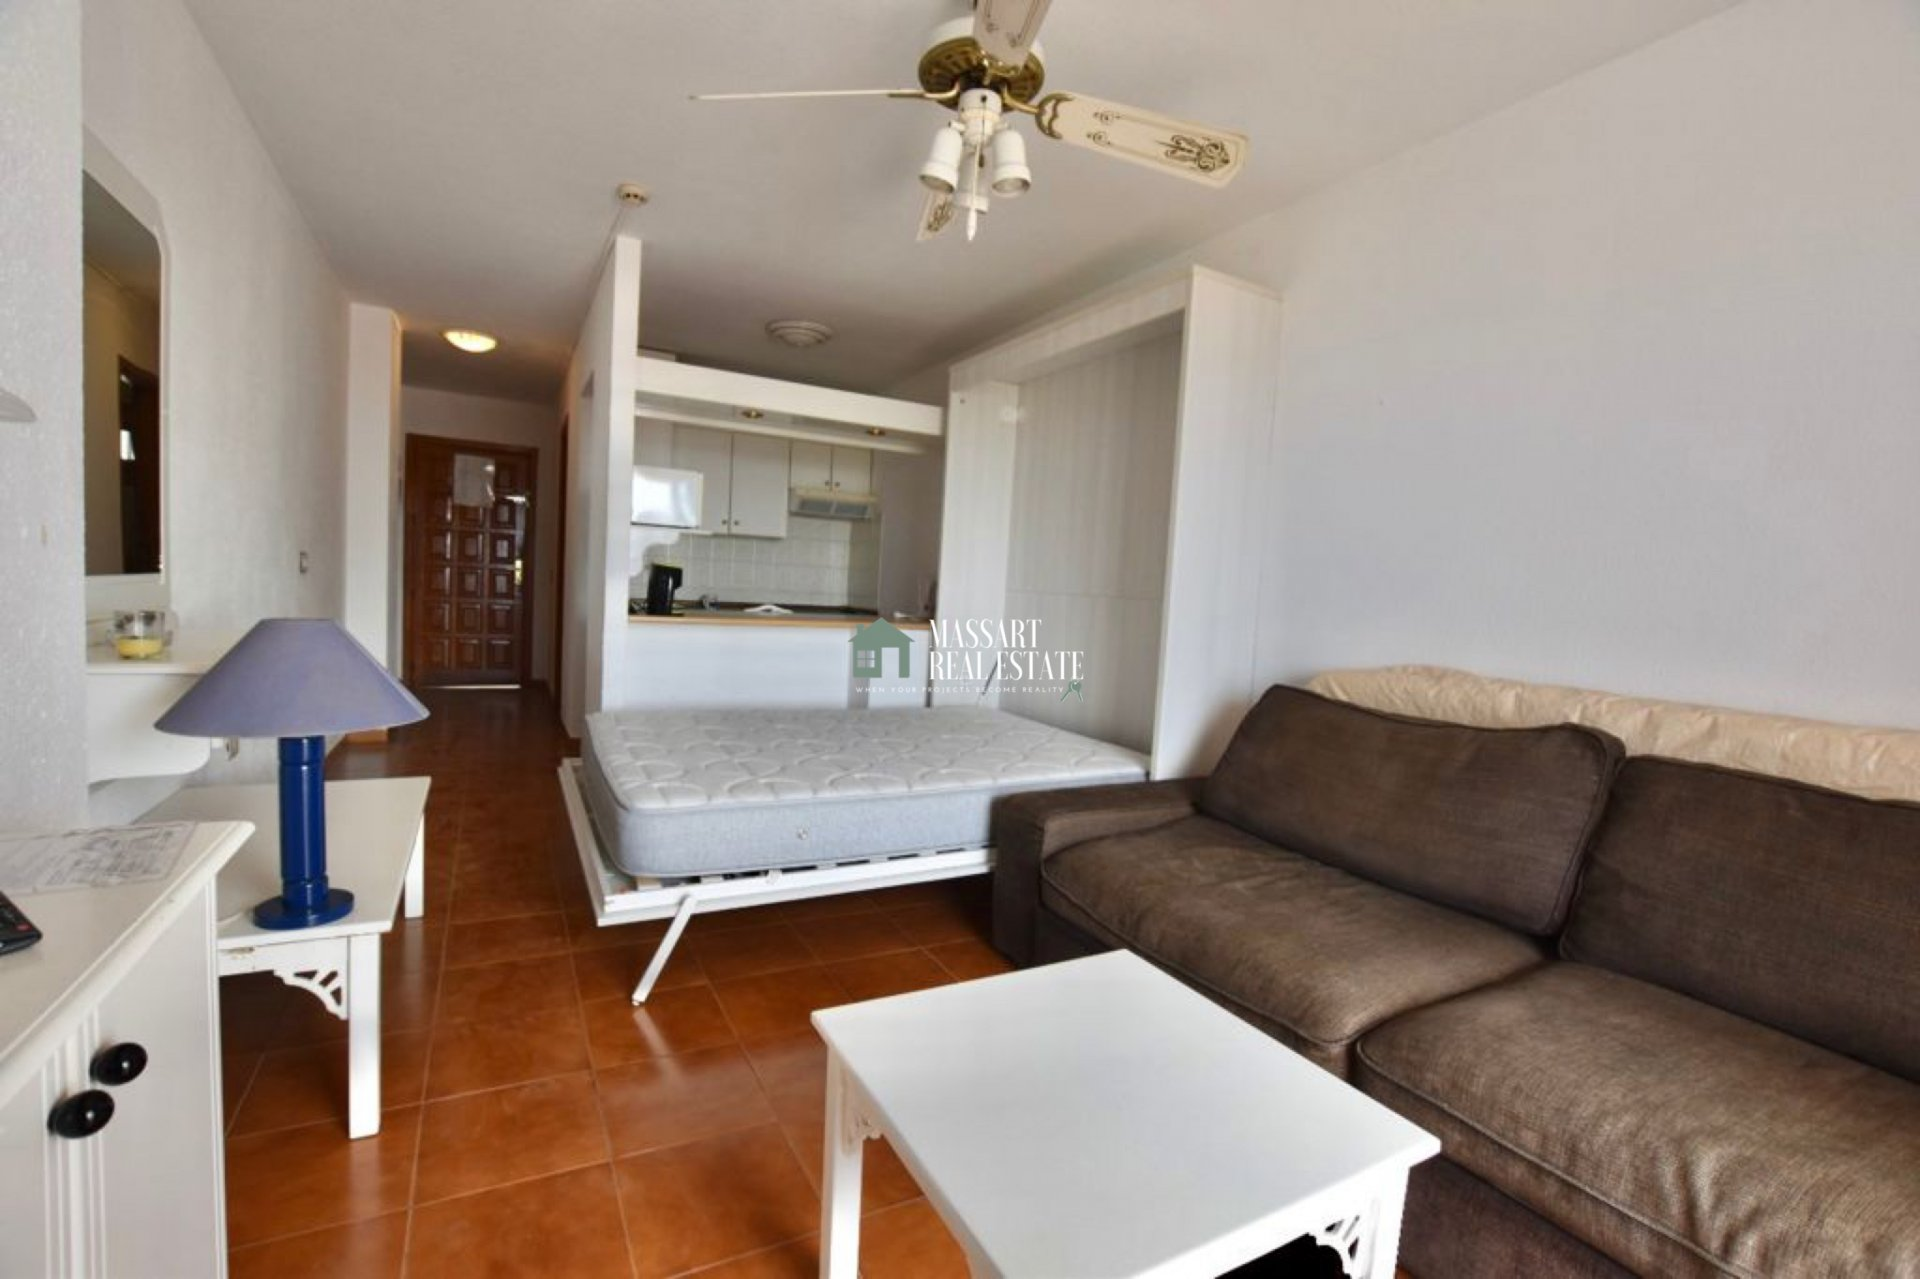 37 m2 furnished studio for sale in Playa Las Américas, in the residential complex Garden City… fantastic investment opportunity!